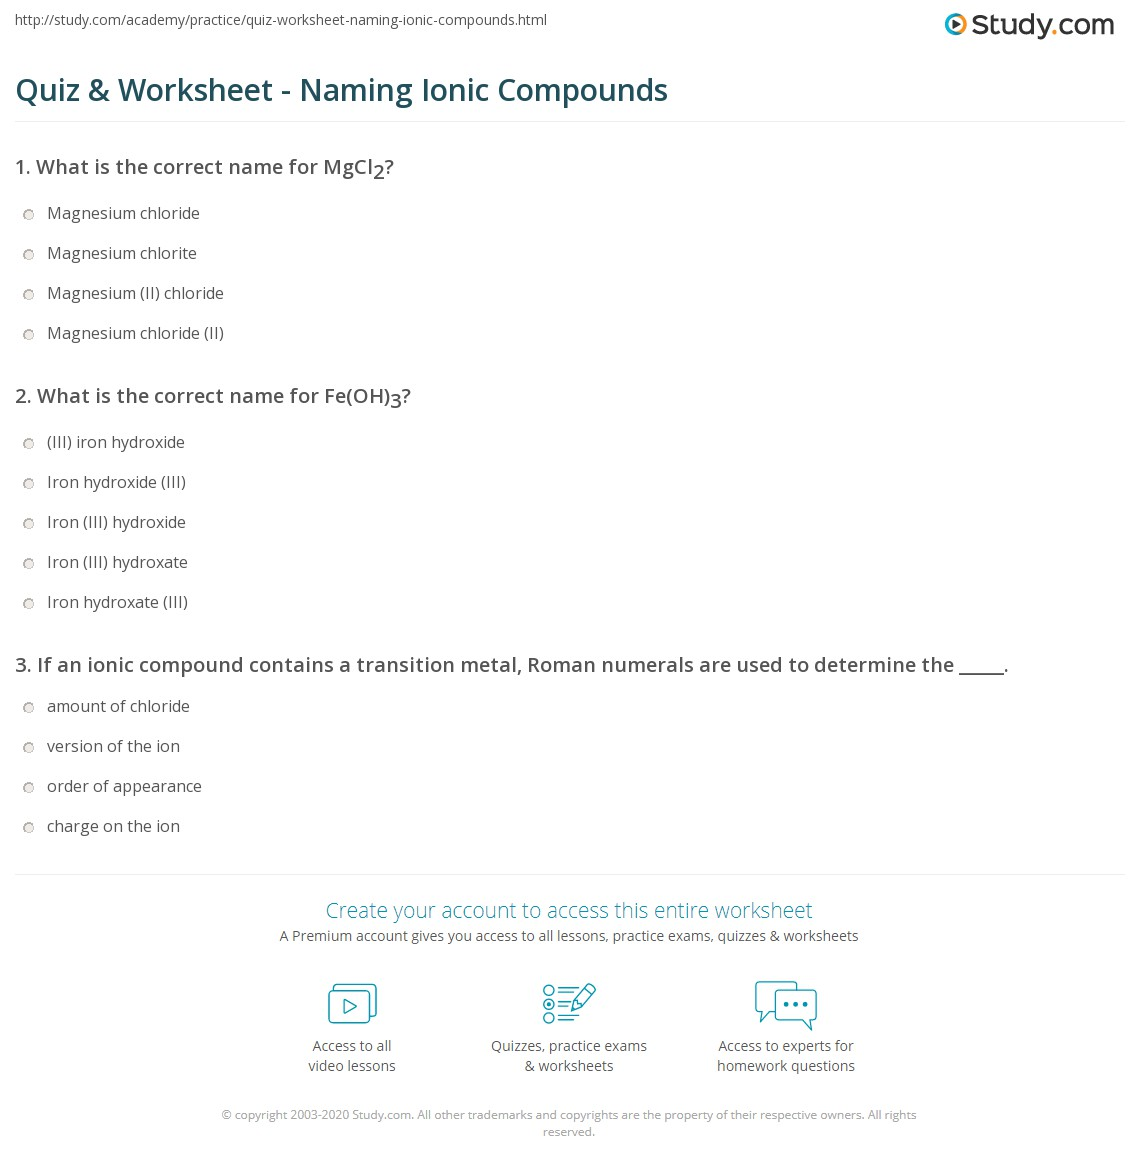 Quiz & Worksheet - Naming Ionic Compounds | Study.com